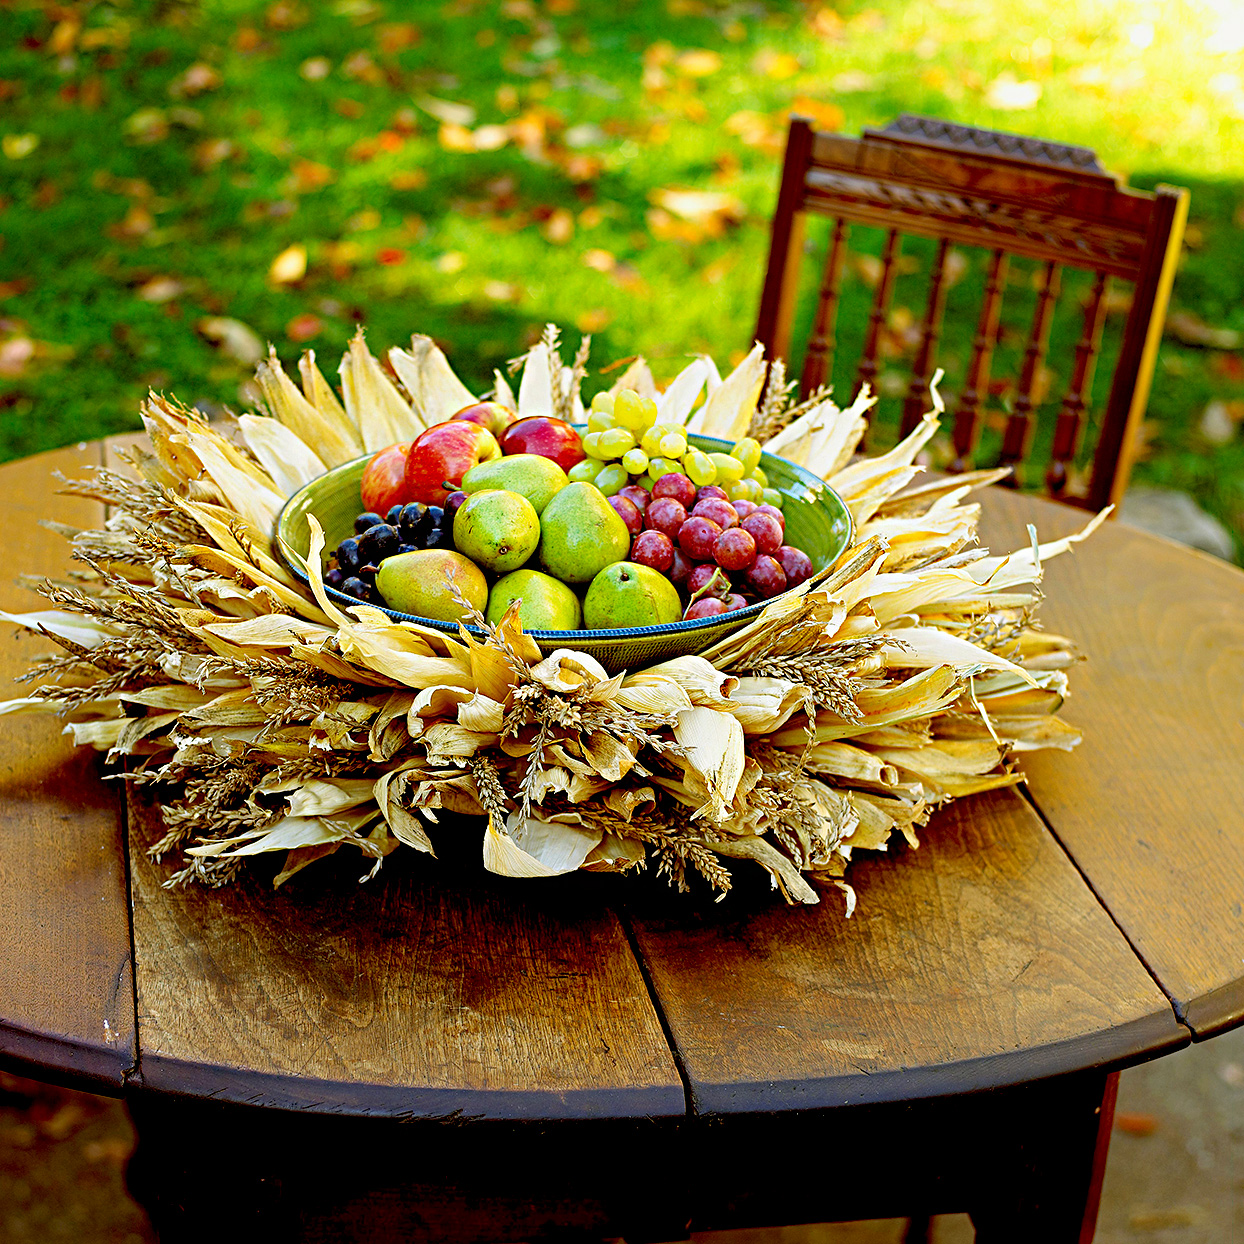 Wooden outdoor table with fall leaves and fruit centerpiece